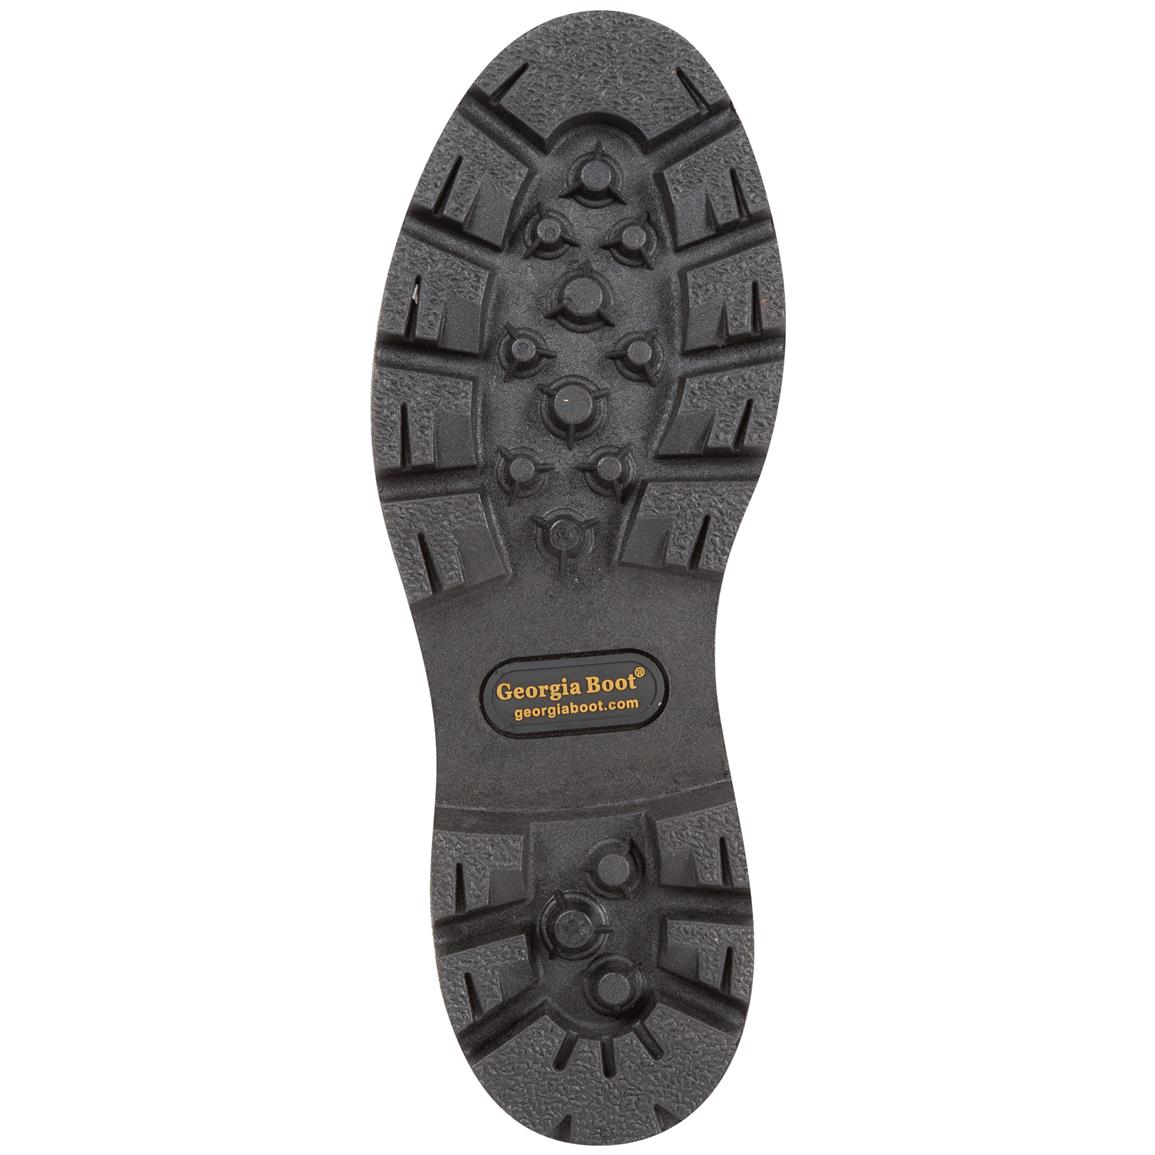 Direct-attached, oil-resistant PVC outsole provides topnotch traction